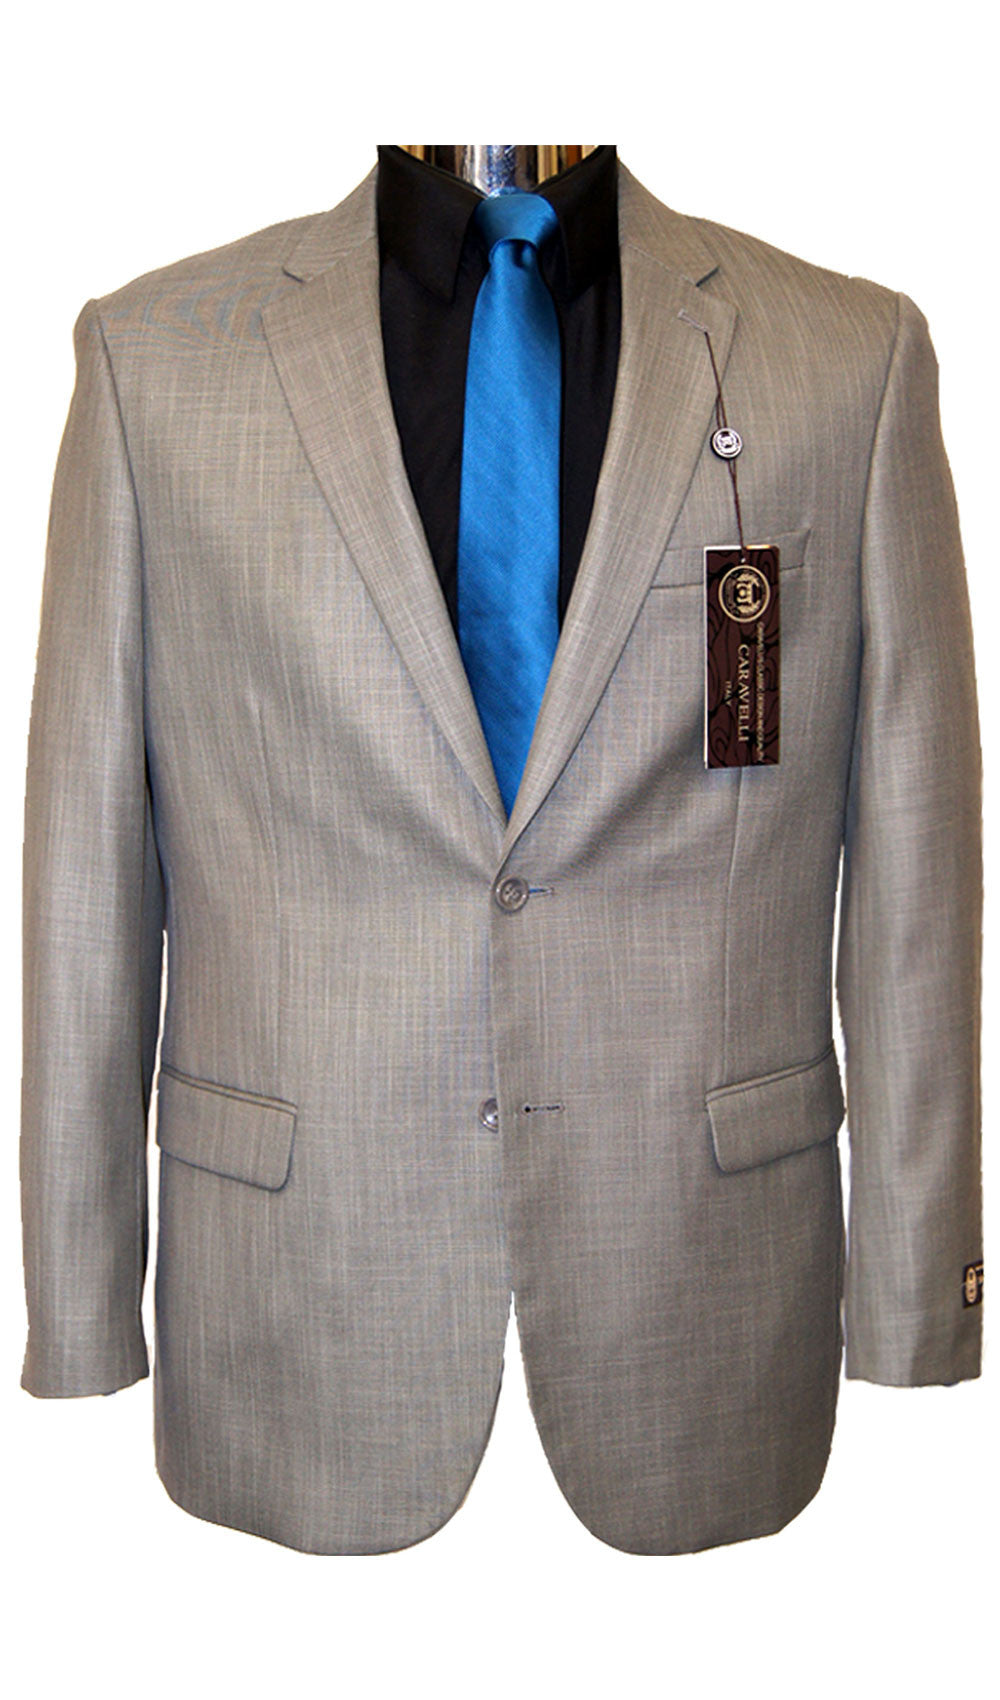 Caravelli - STYLE  LIGHT GREY SUIT Caravelli- Schaffer's Bridal in Des Moines & Phoenix